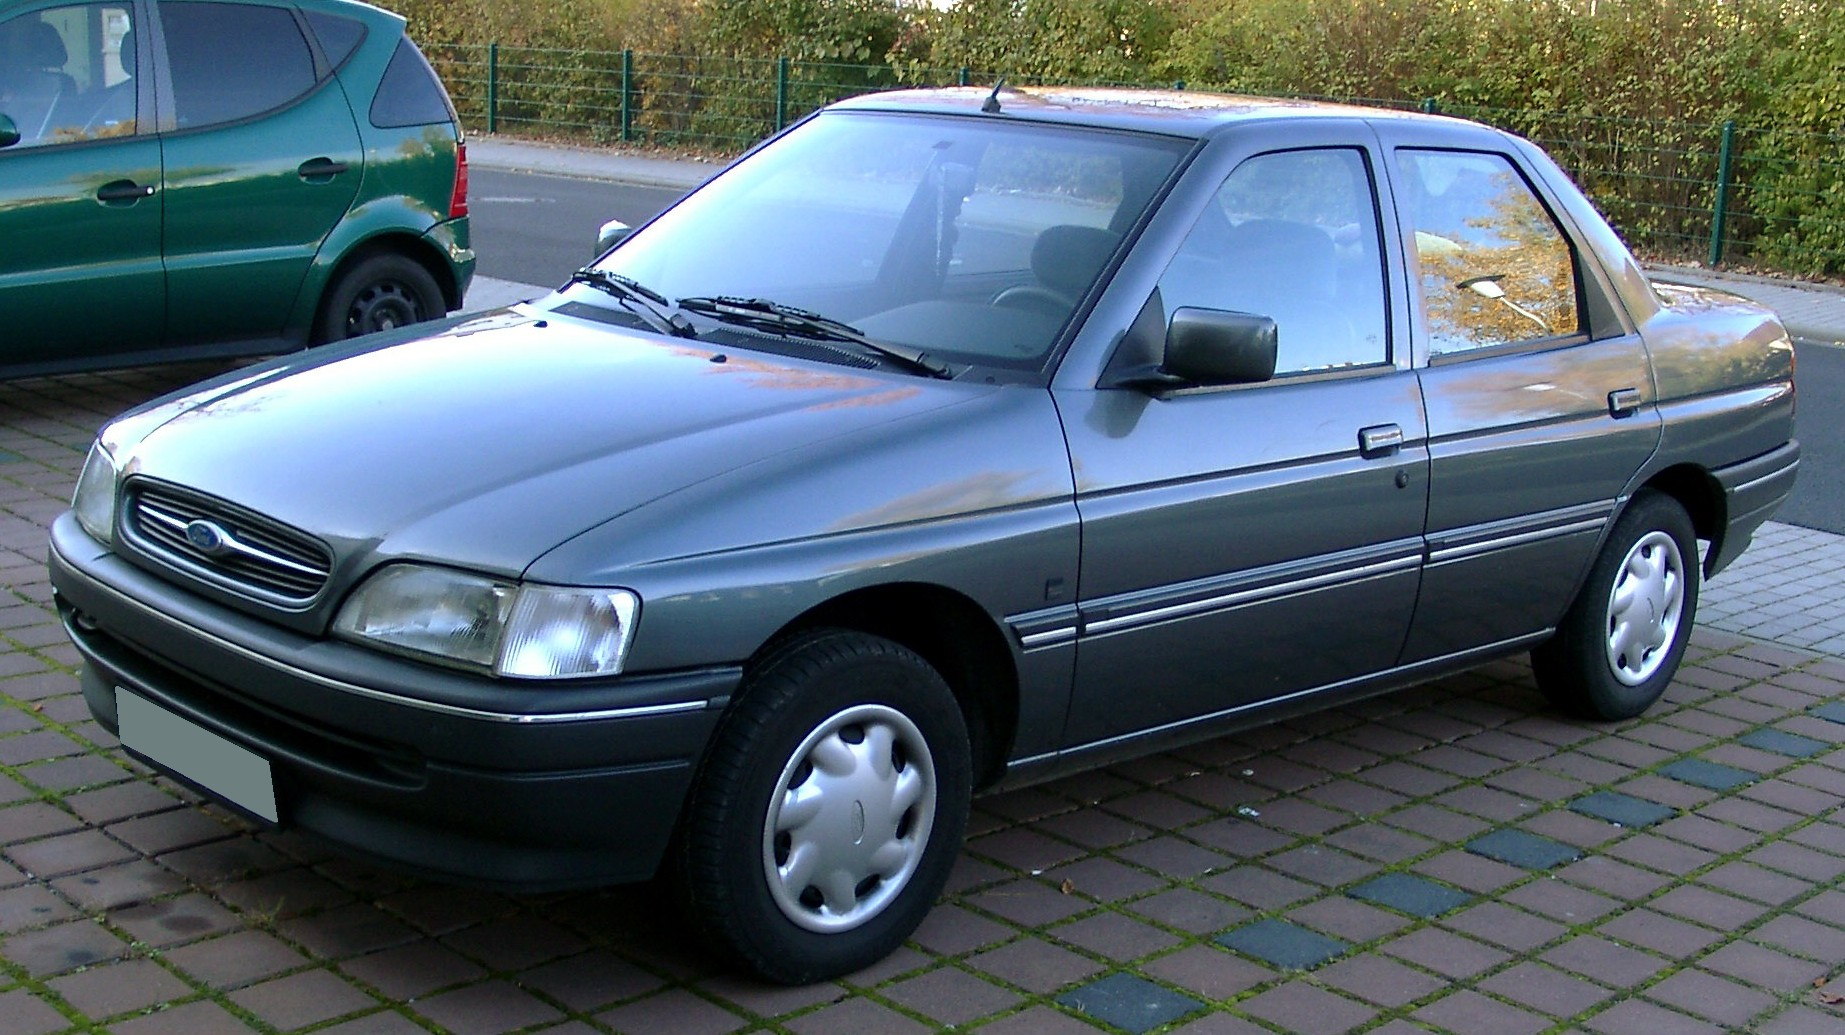 Ford Orion photo 16